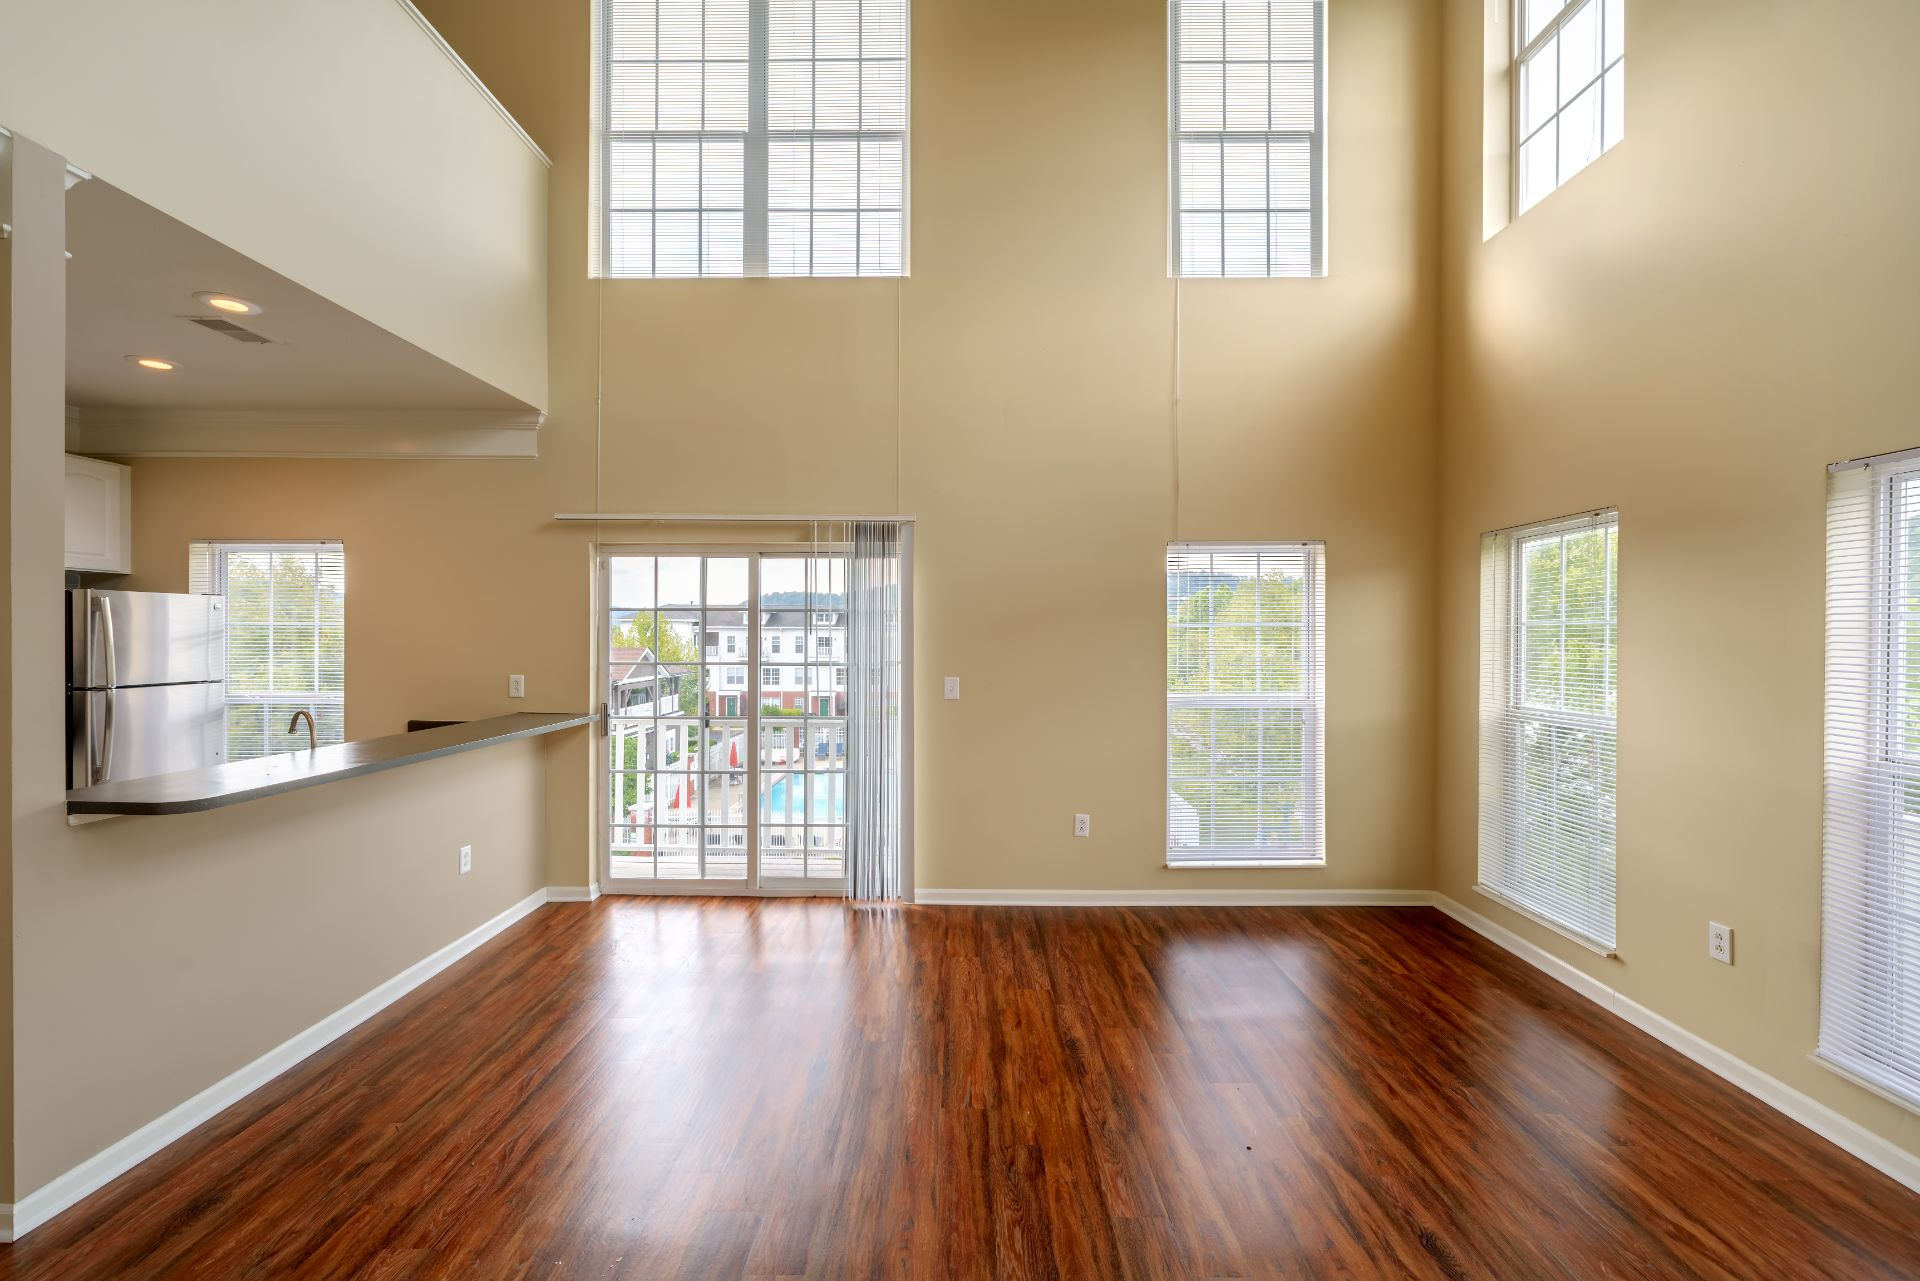 Luxury Waterfront 1, 2 and 3 Bedroom Apartments and Townhomes with Large Open Spaces and Windows,   Balconies and River views,  611 E. Waterfront Drive, Munhall, PA 15120